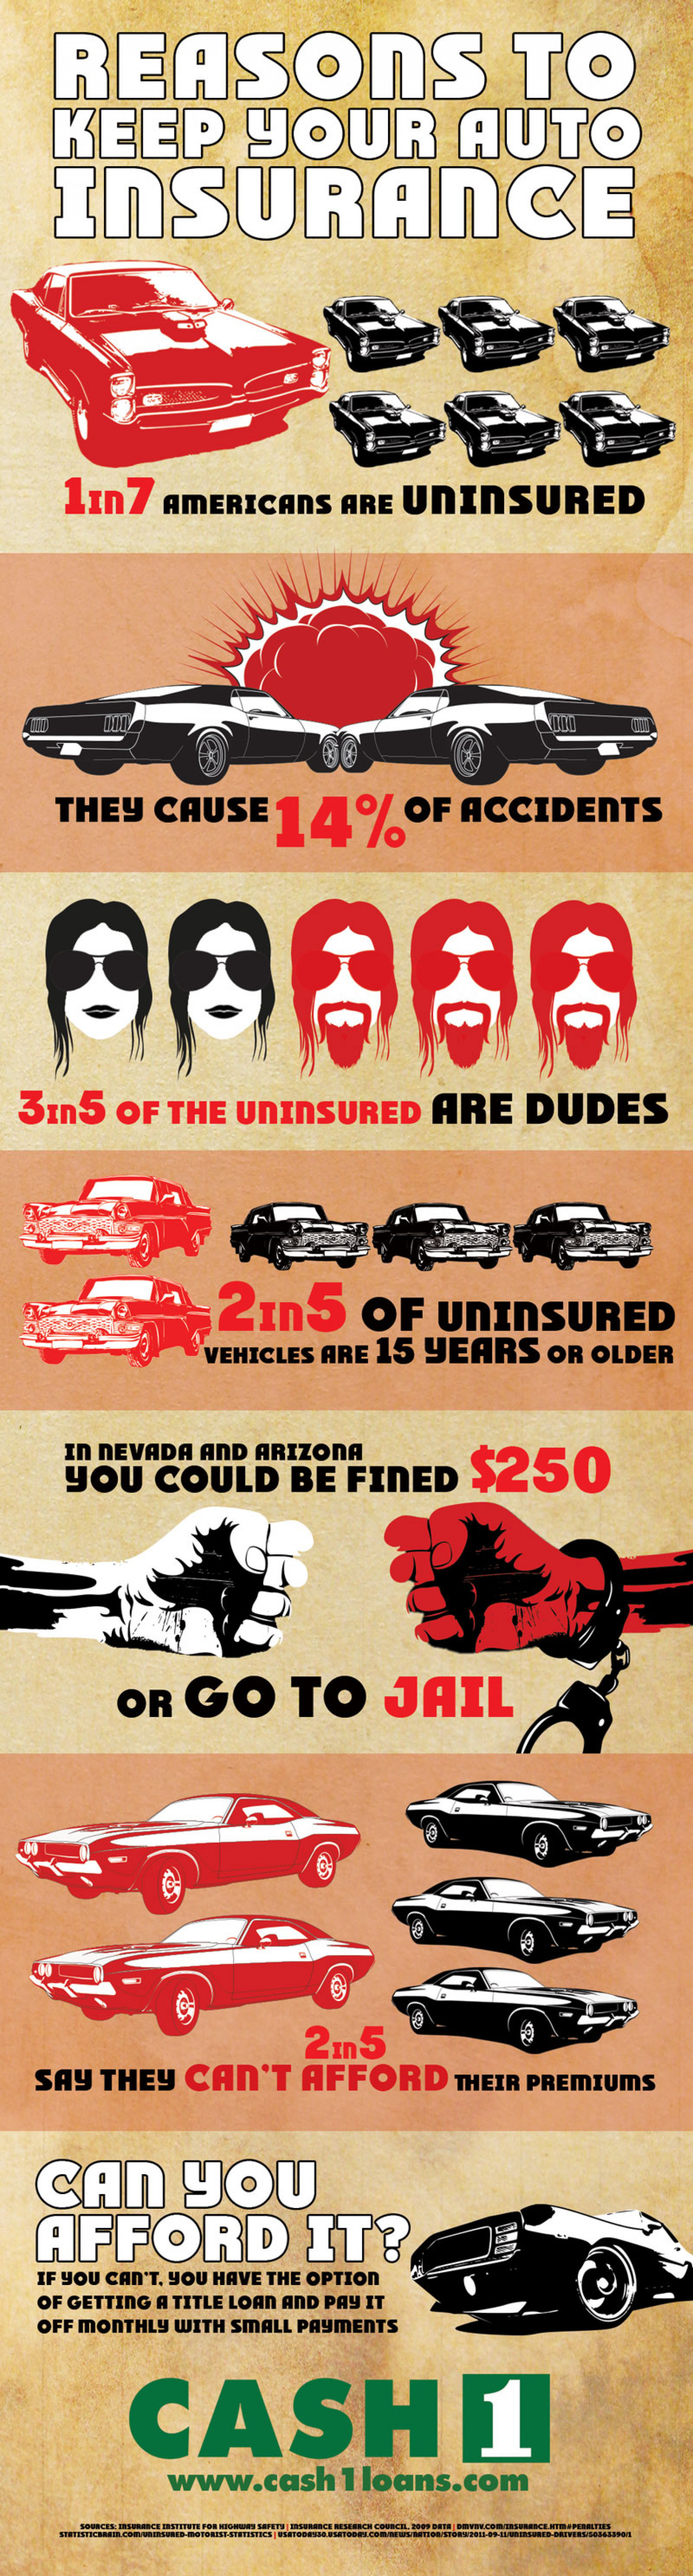 Reasons to Keep Your Auto Insurance Infographic